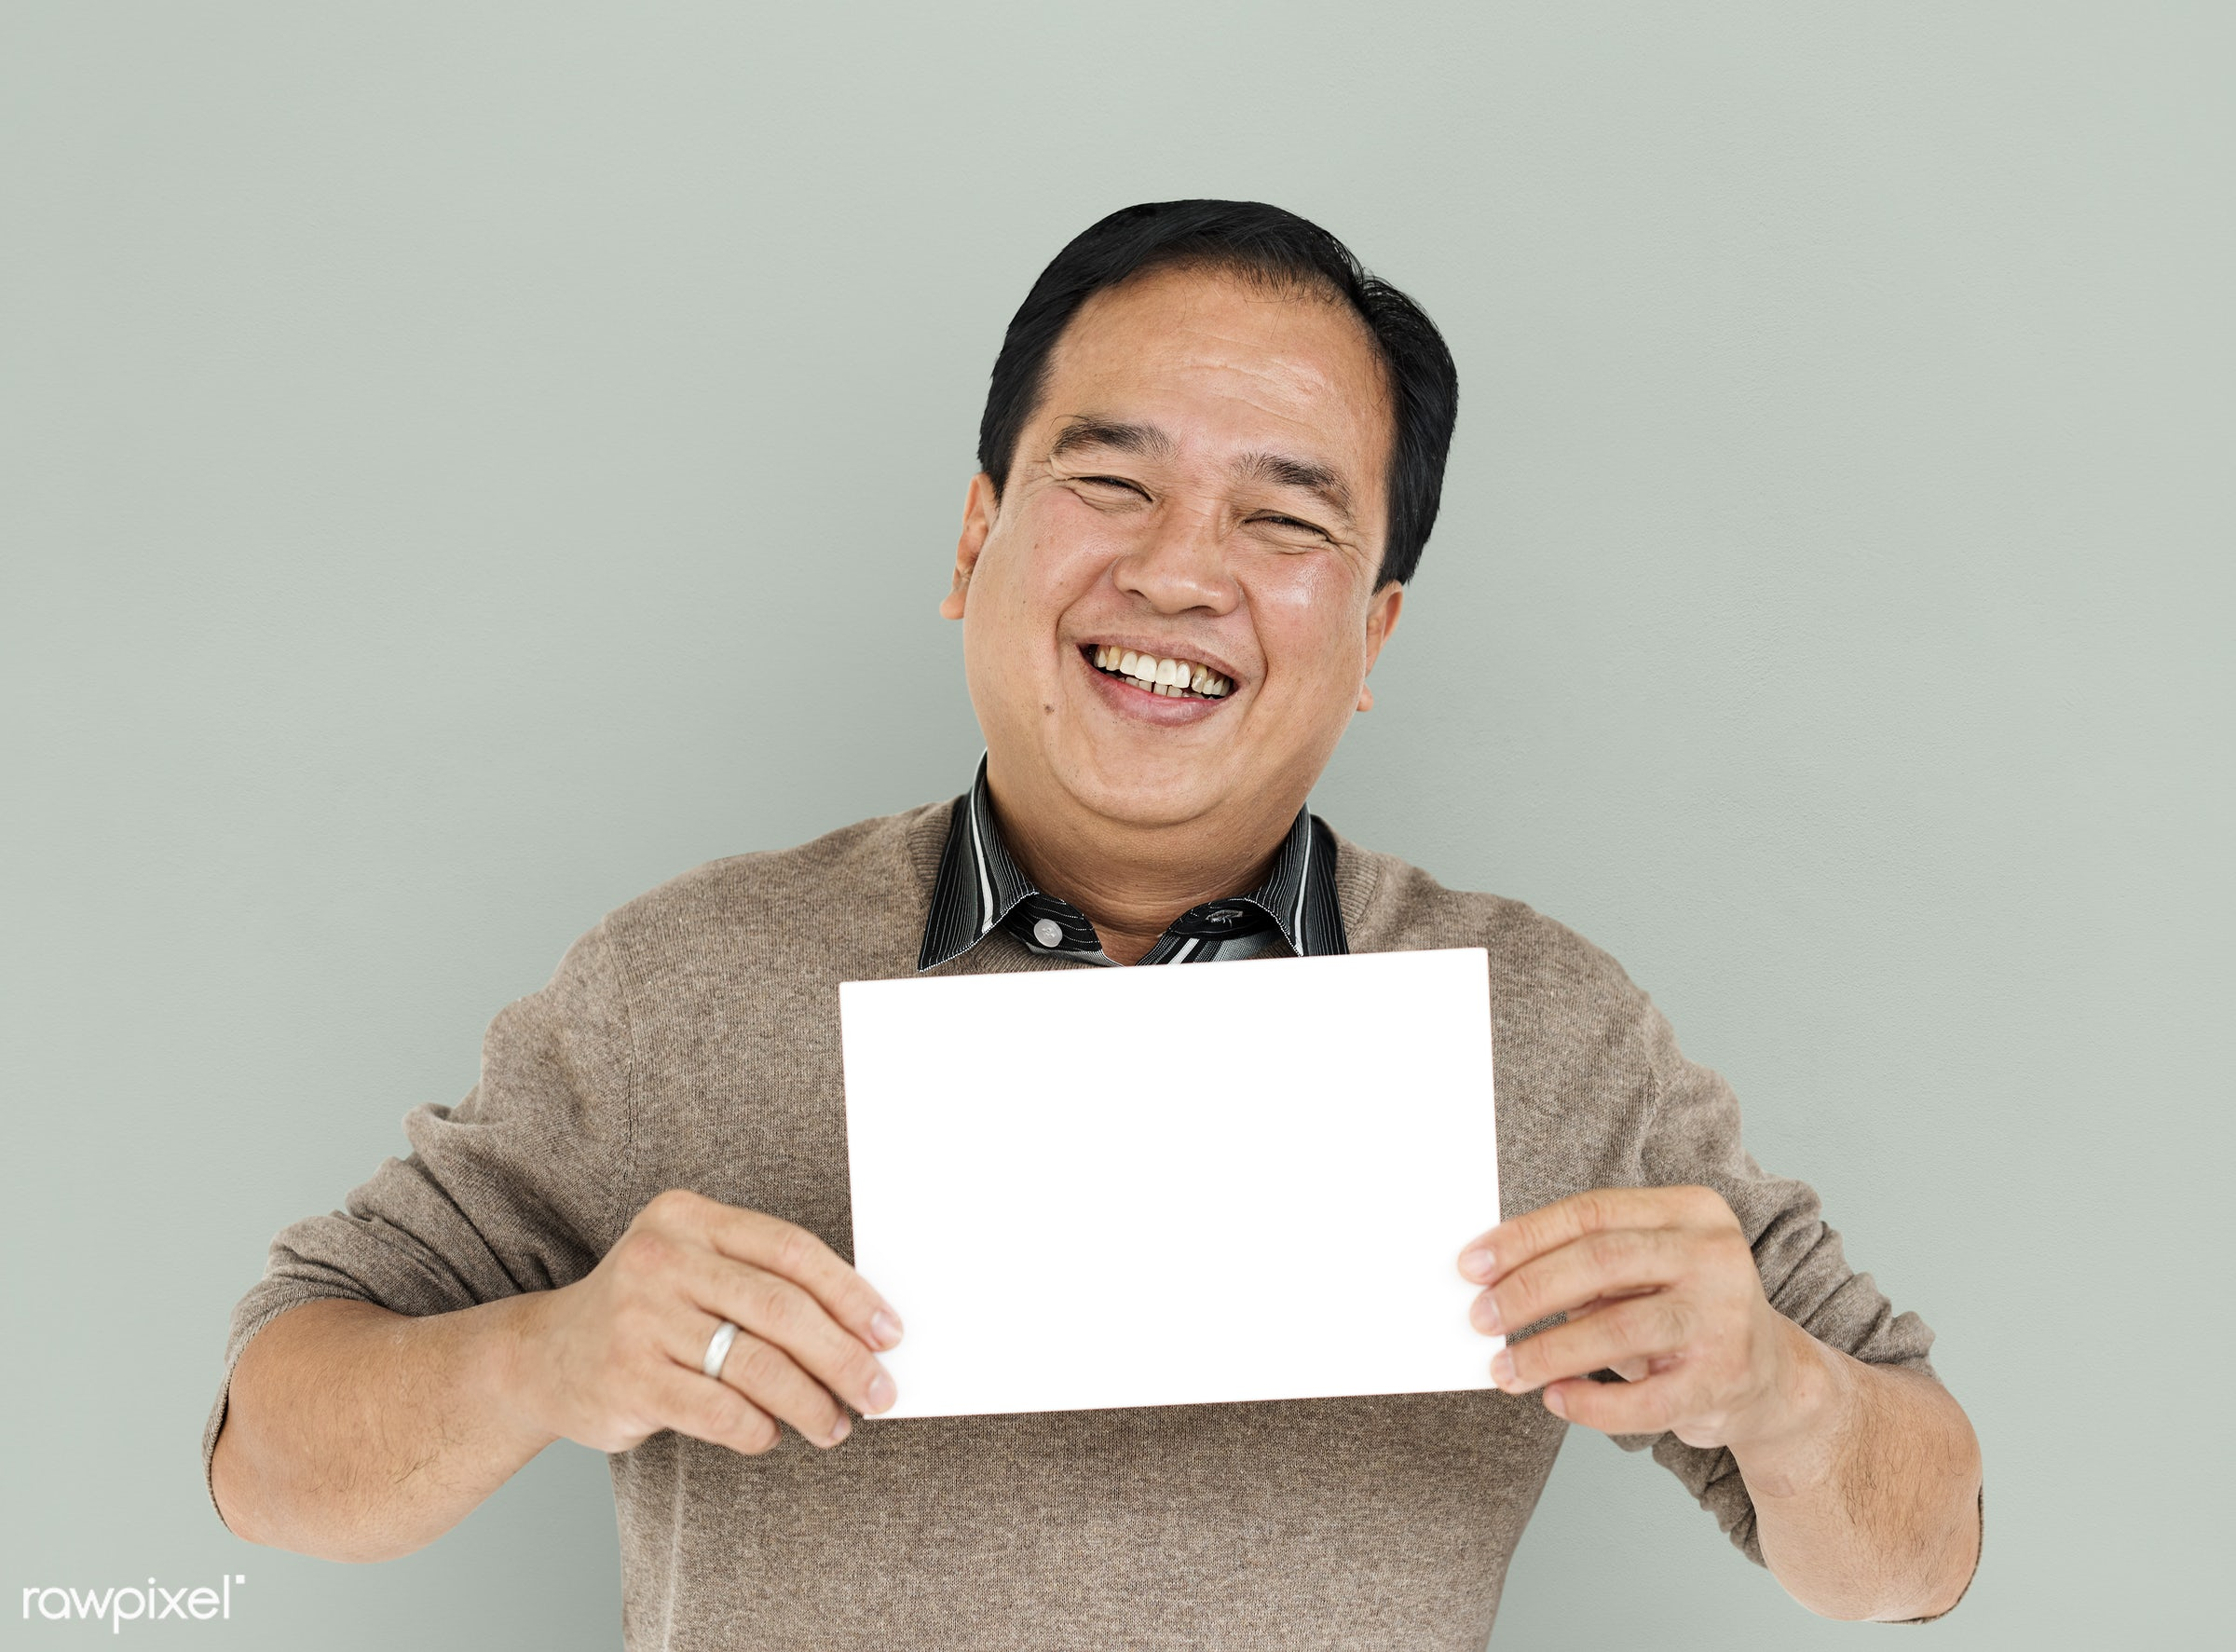 expression, studio, person, placard, smile, isolated, creative, symbolic, image, happiness, board, portrait, emotion,...